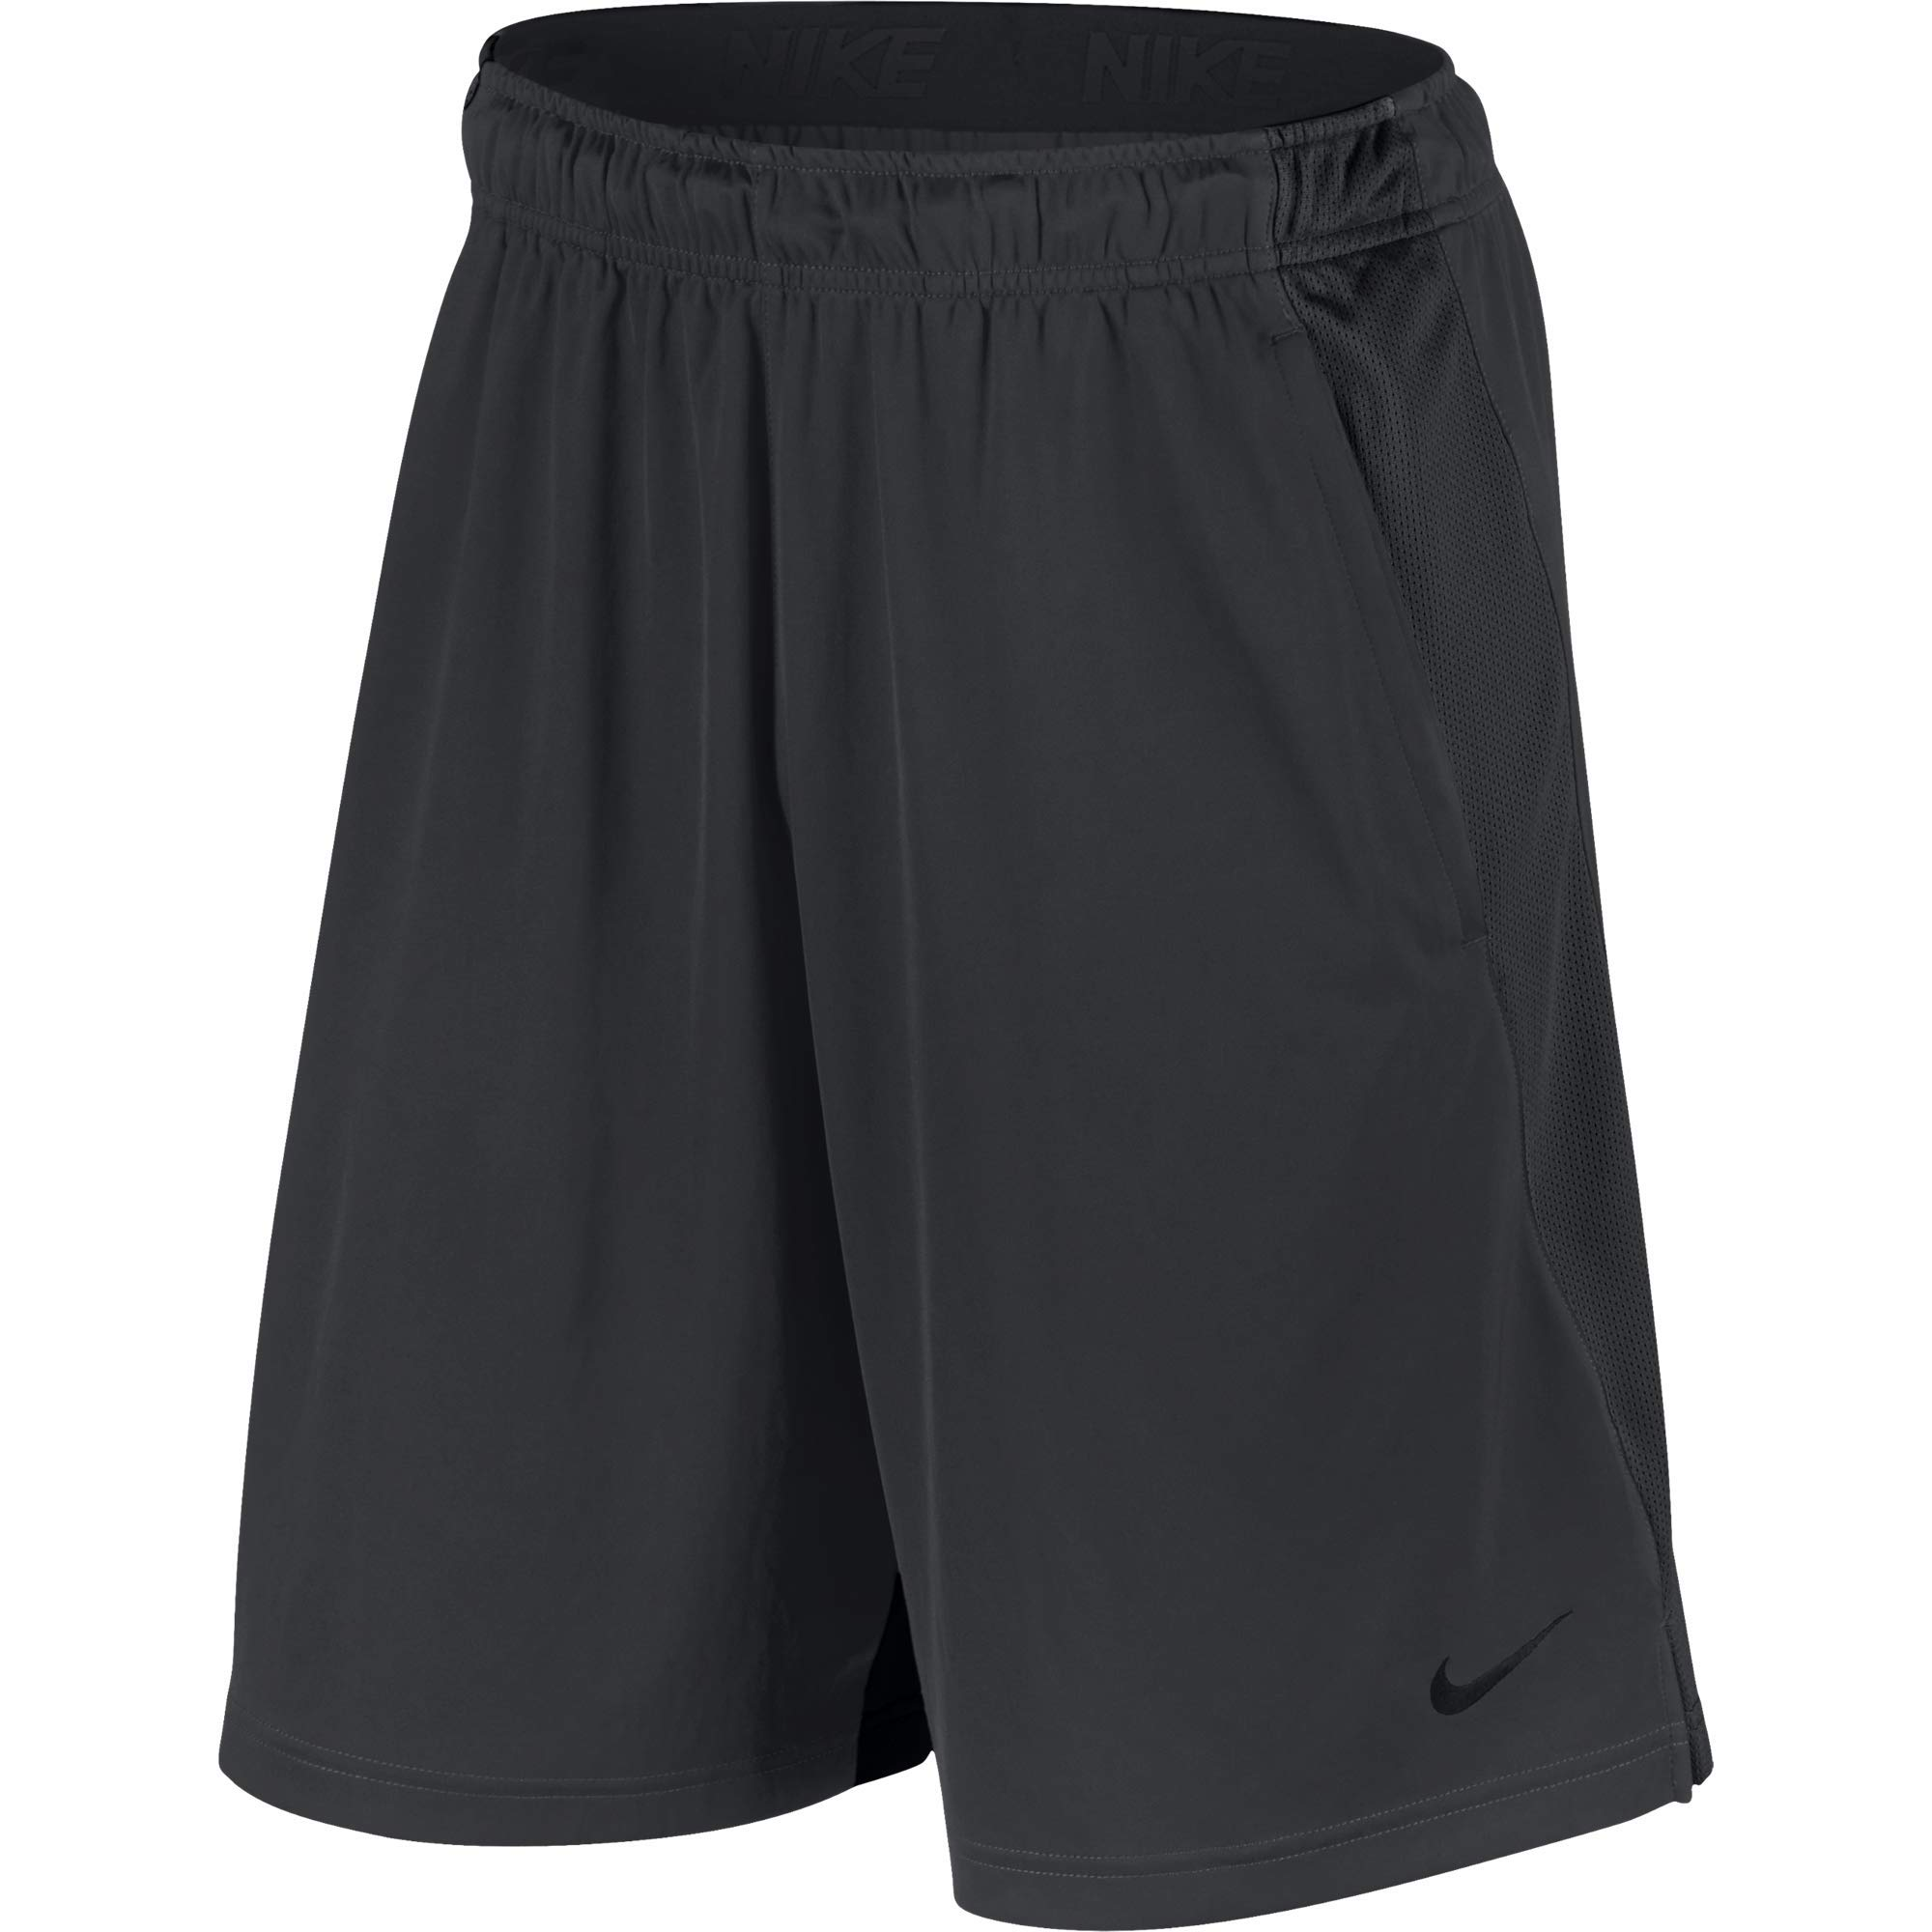 Nike Men's Dry Training Shorts, Anthracite/Anthracite/Black, XXXX-Large by Nike